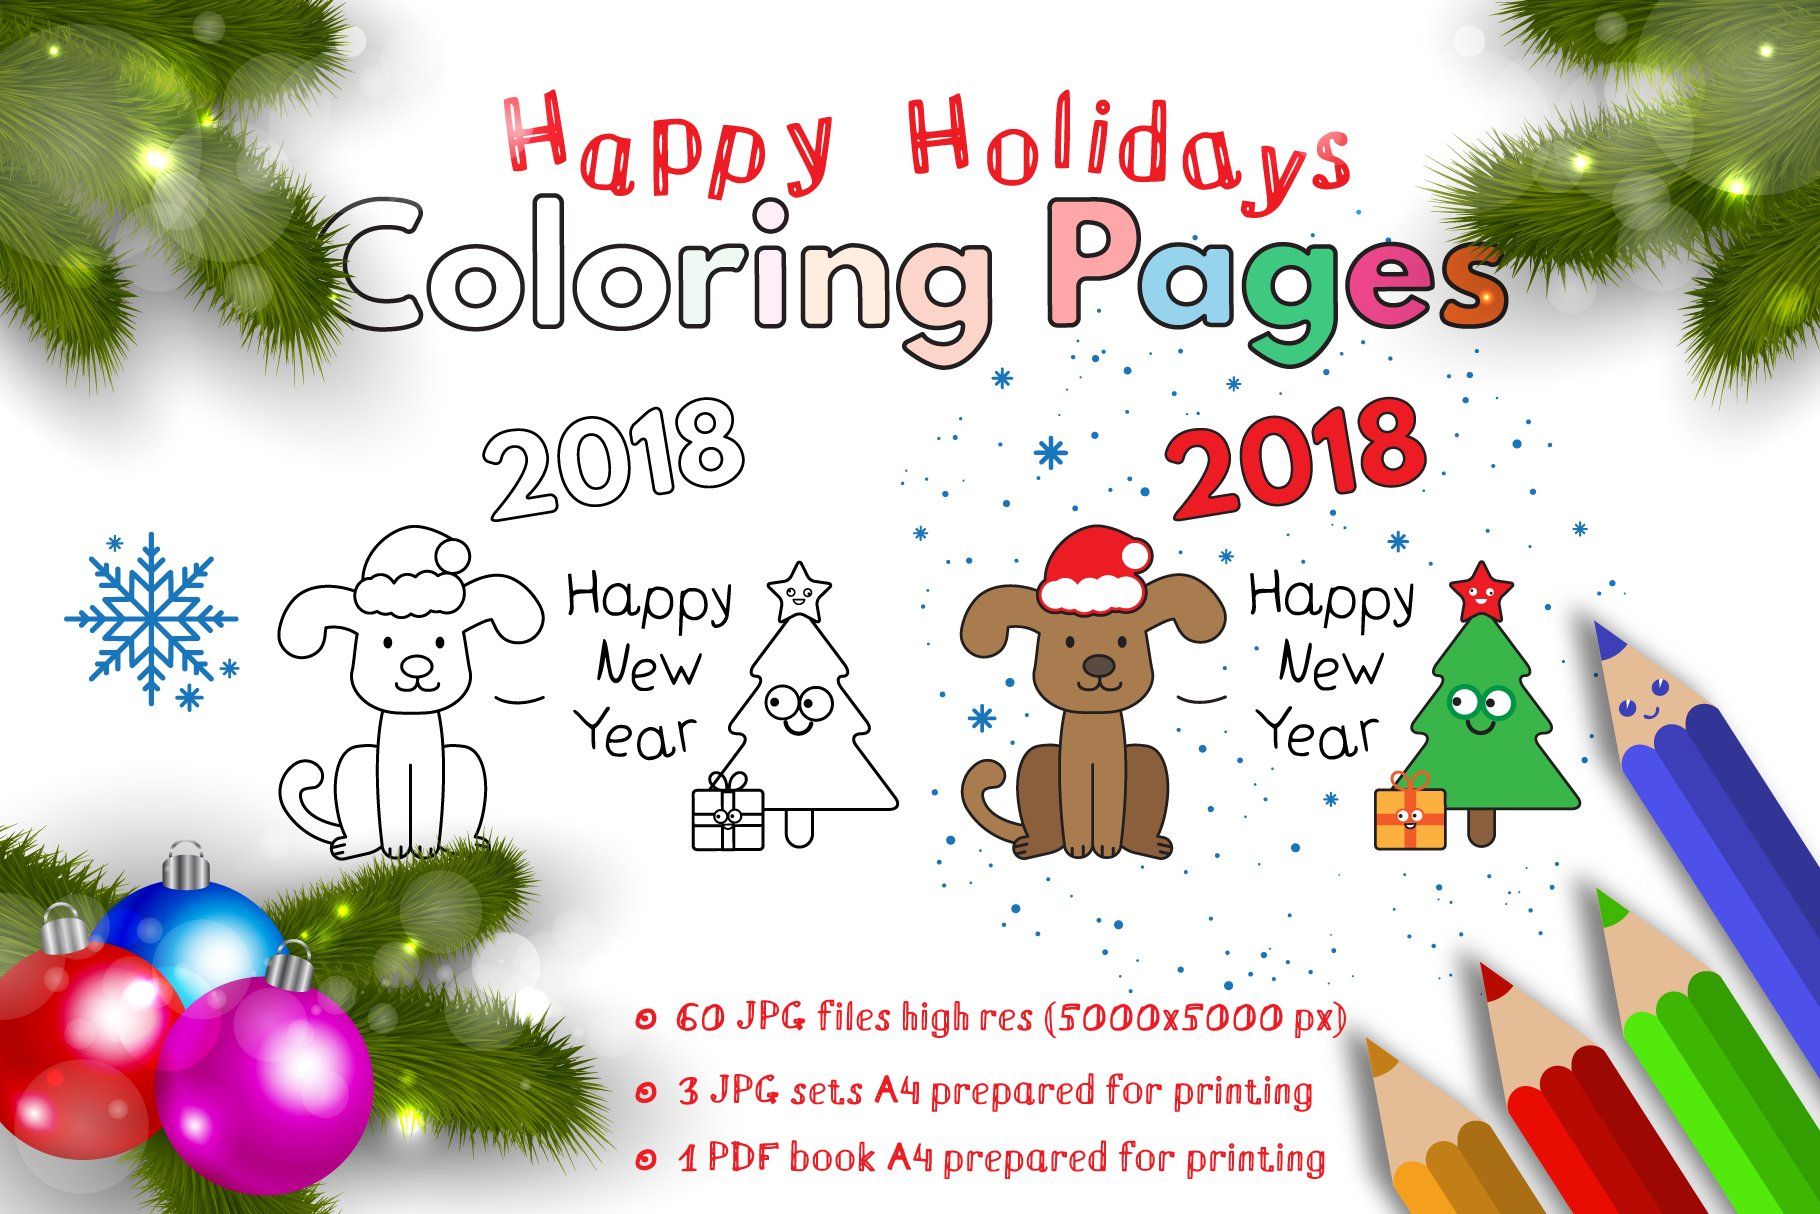 Happy Holidays Coloring Pages Custom Designed Illustrations Creative Market